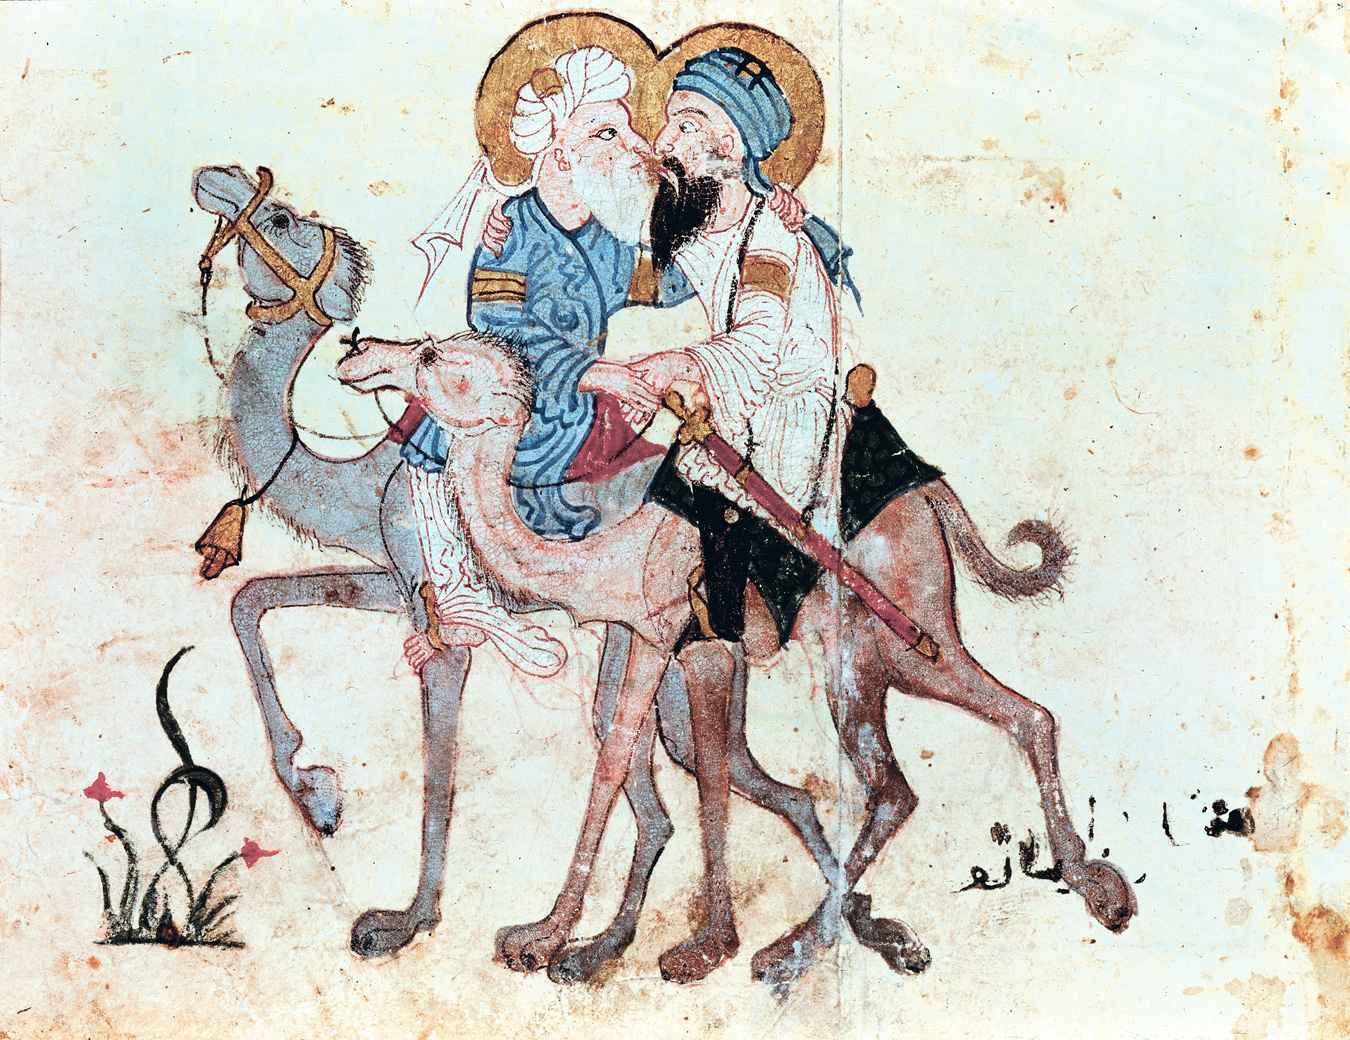 Farewells before the return to Mecca, from a manuscript of al-Hariri's Maqamat, Baghdad, c. 1240. National Library of France, Department of Manuscripts, Ms. 3929 f. 122.